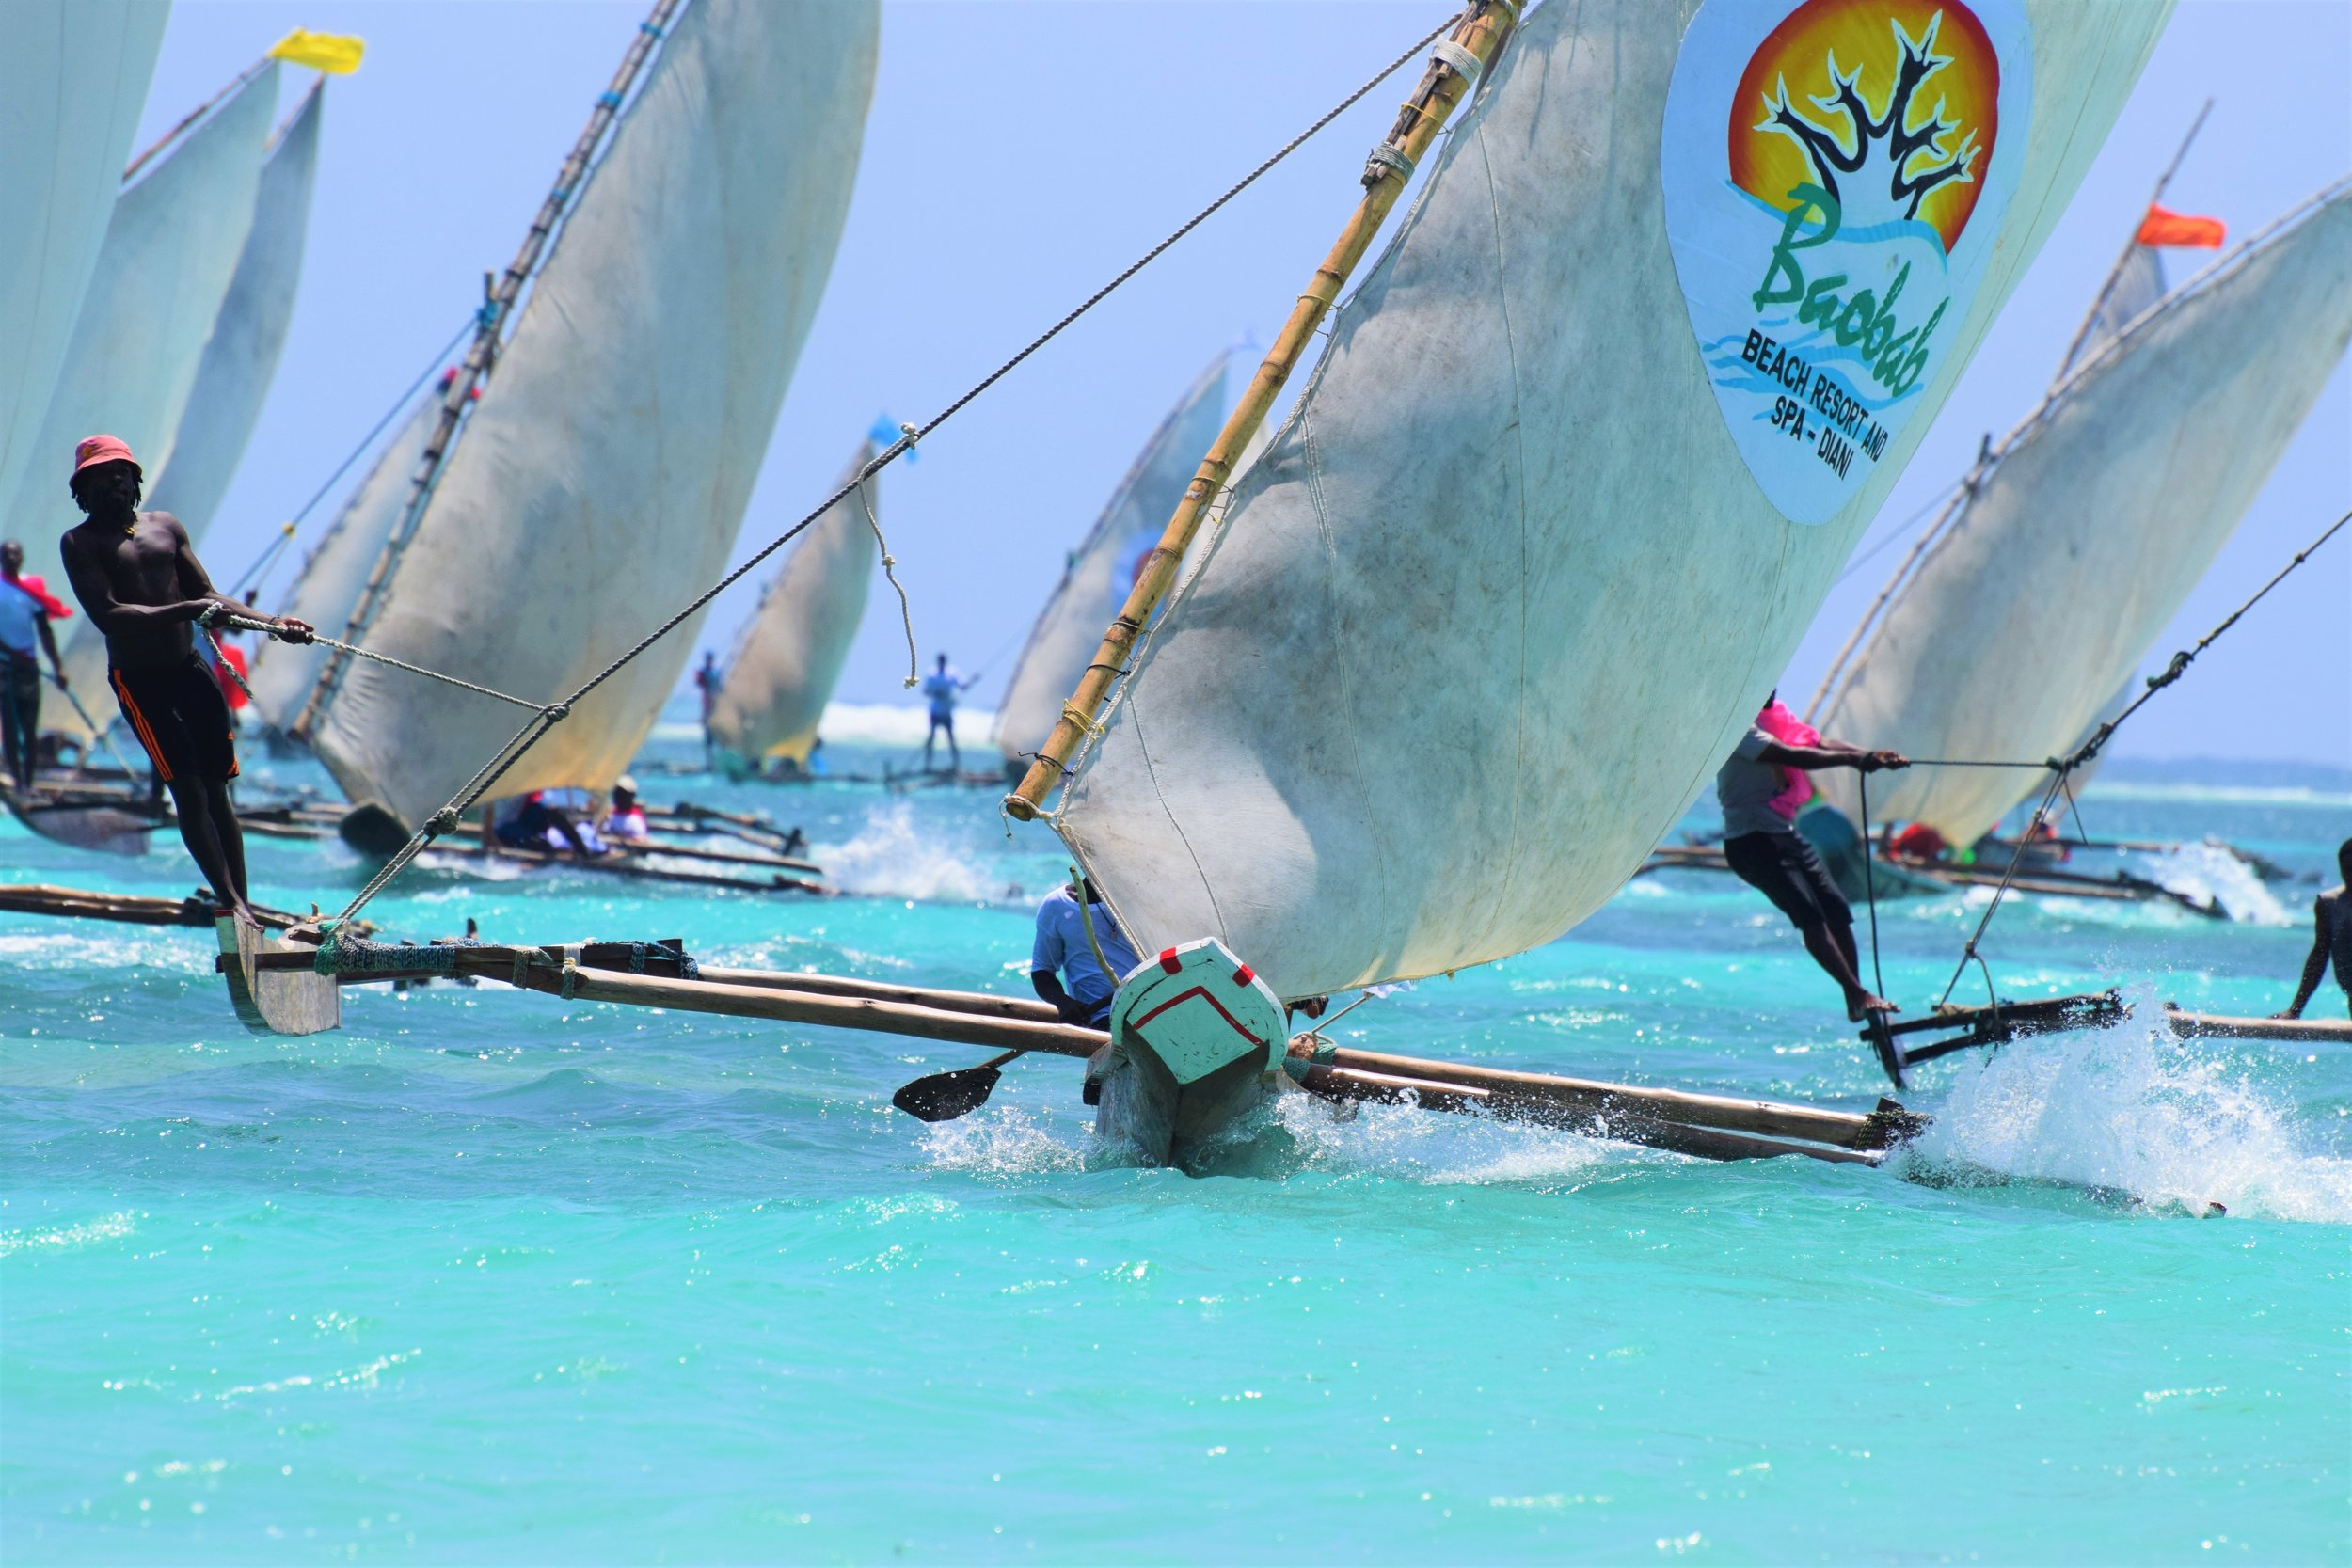 The boats in full sail upwind during the race. Diani regatta is a south coast kenya annual event.